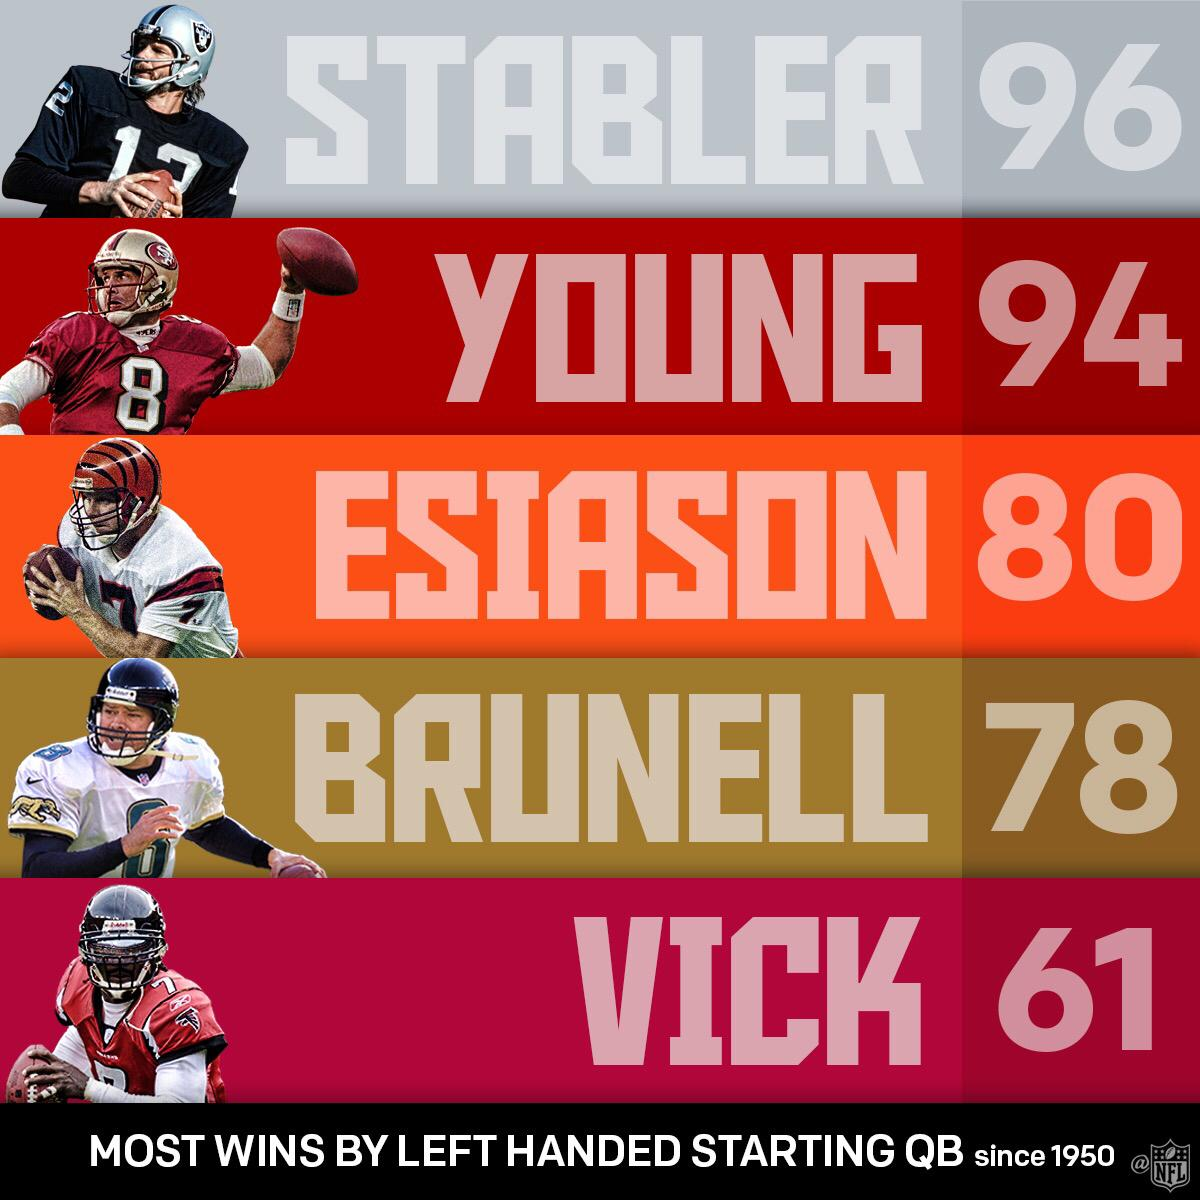 Most Wins by a Left-Handed Starting QB! #LeftHandersDay https://t.co/Z2utJNncnS